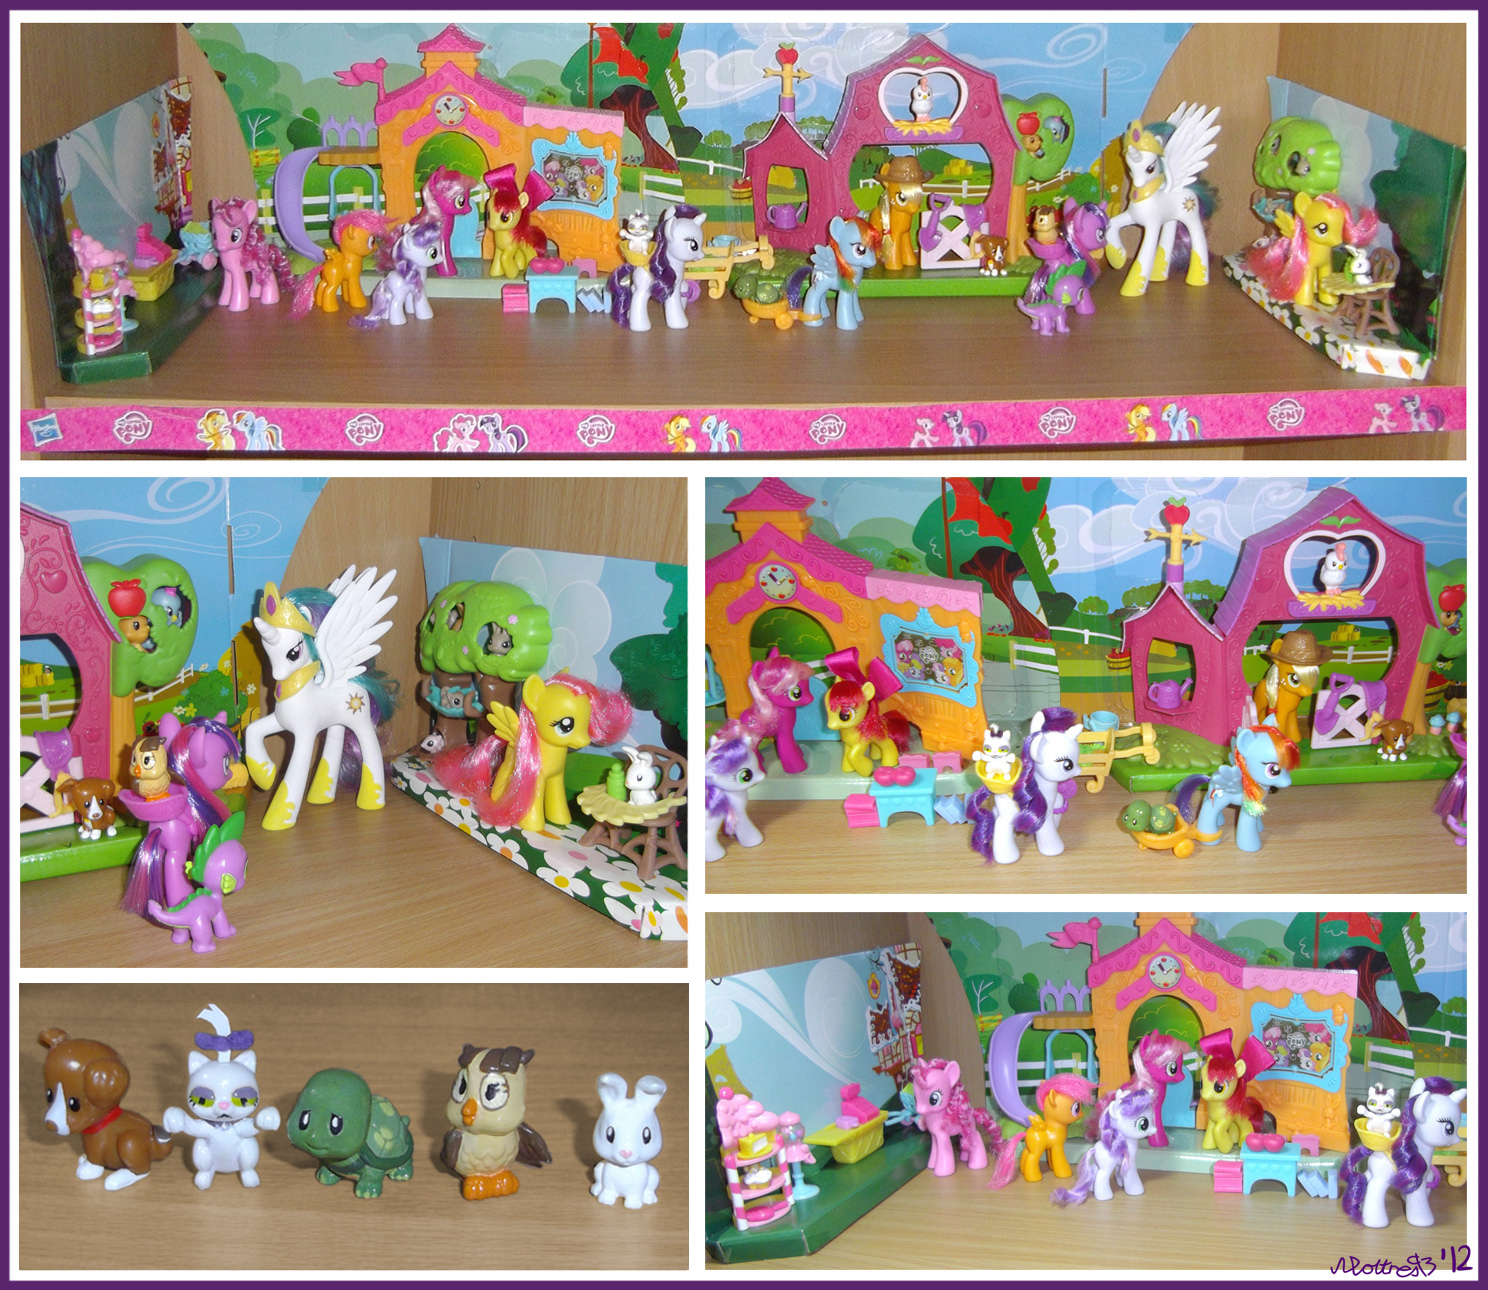 Busy Day in Ponyville (My MLP collection) by moltres93